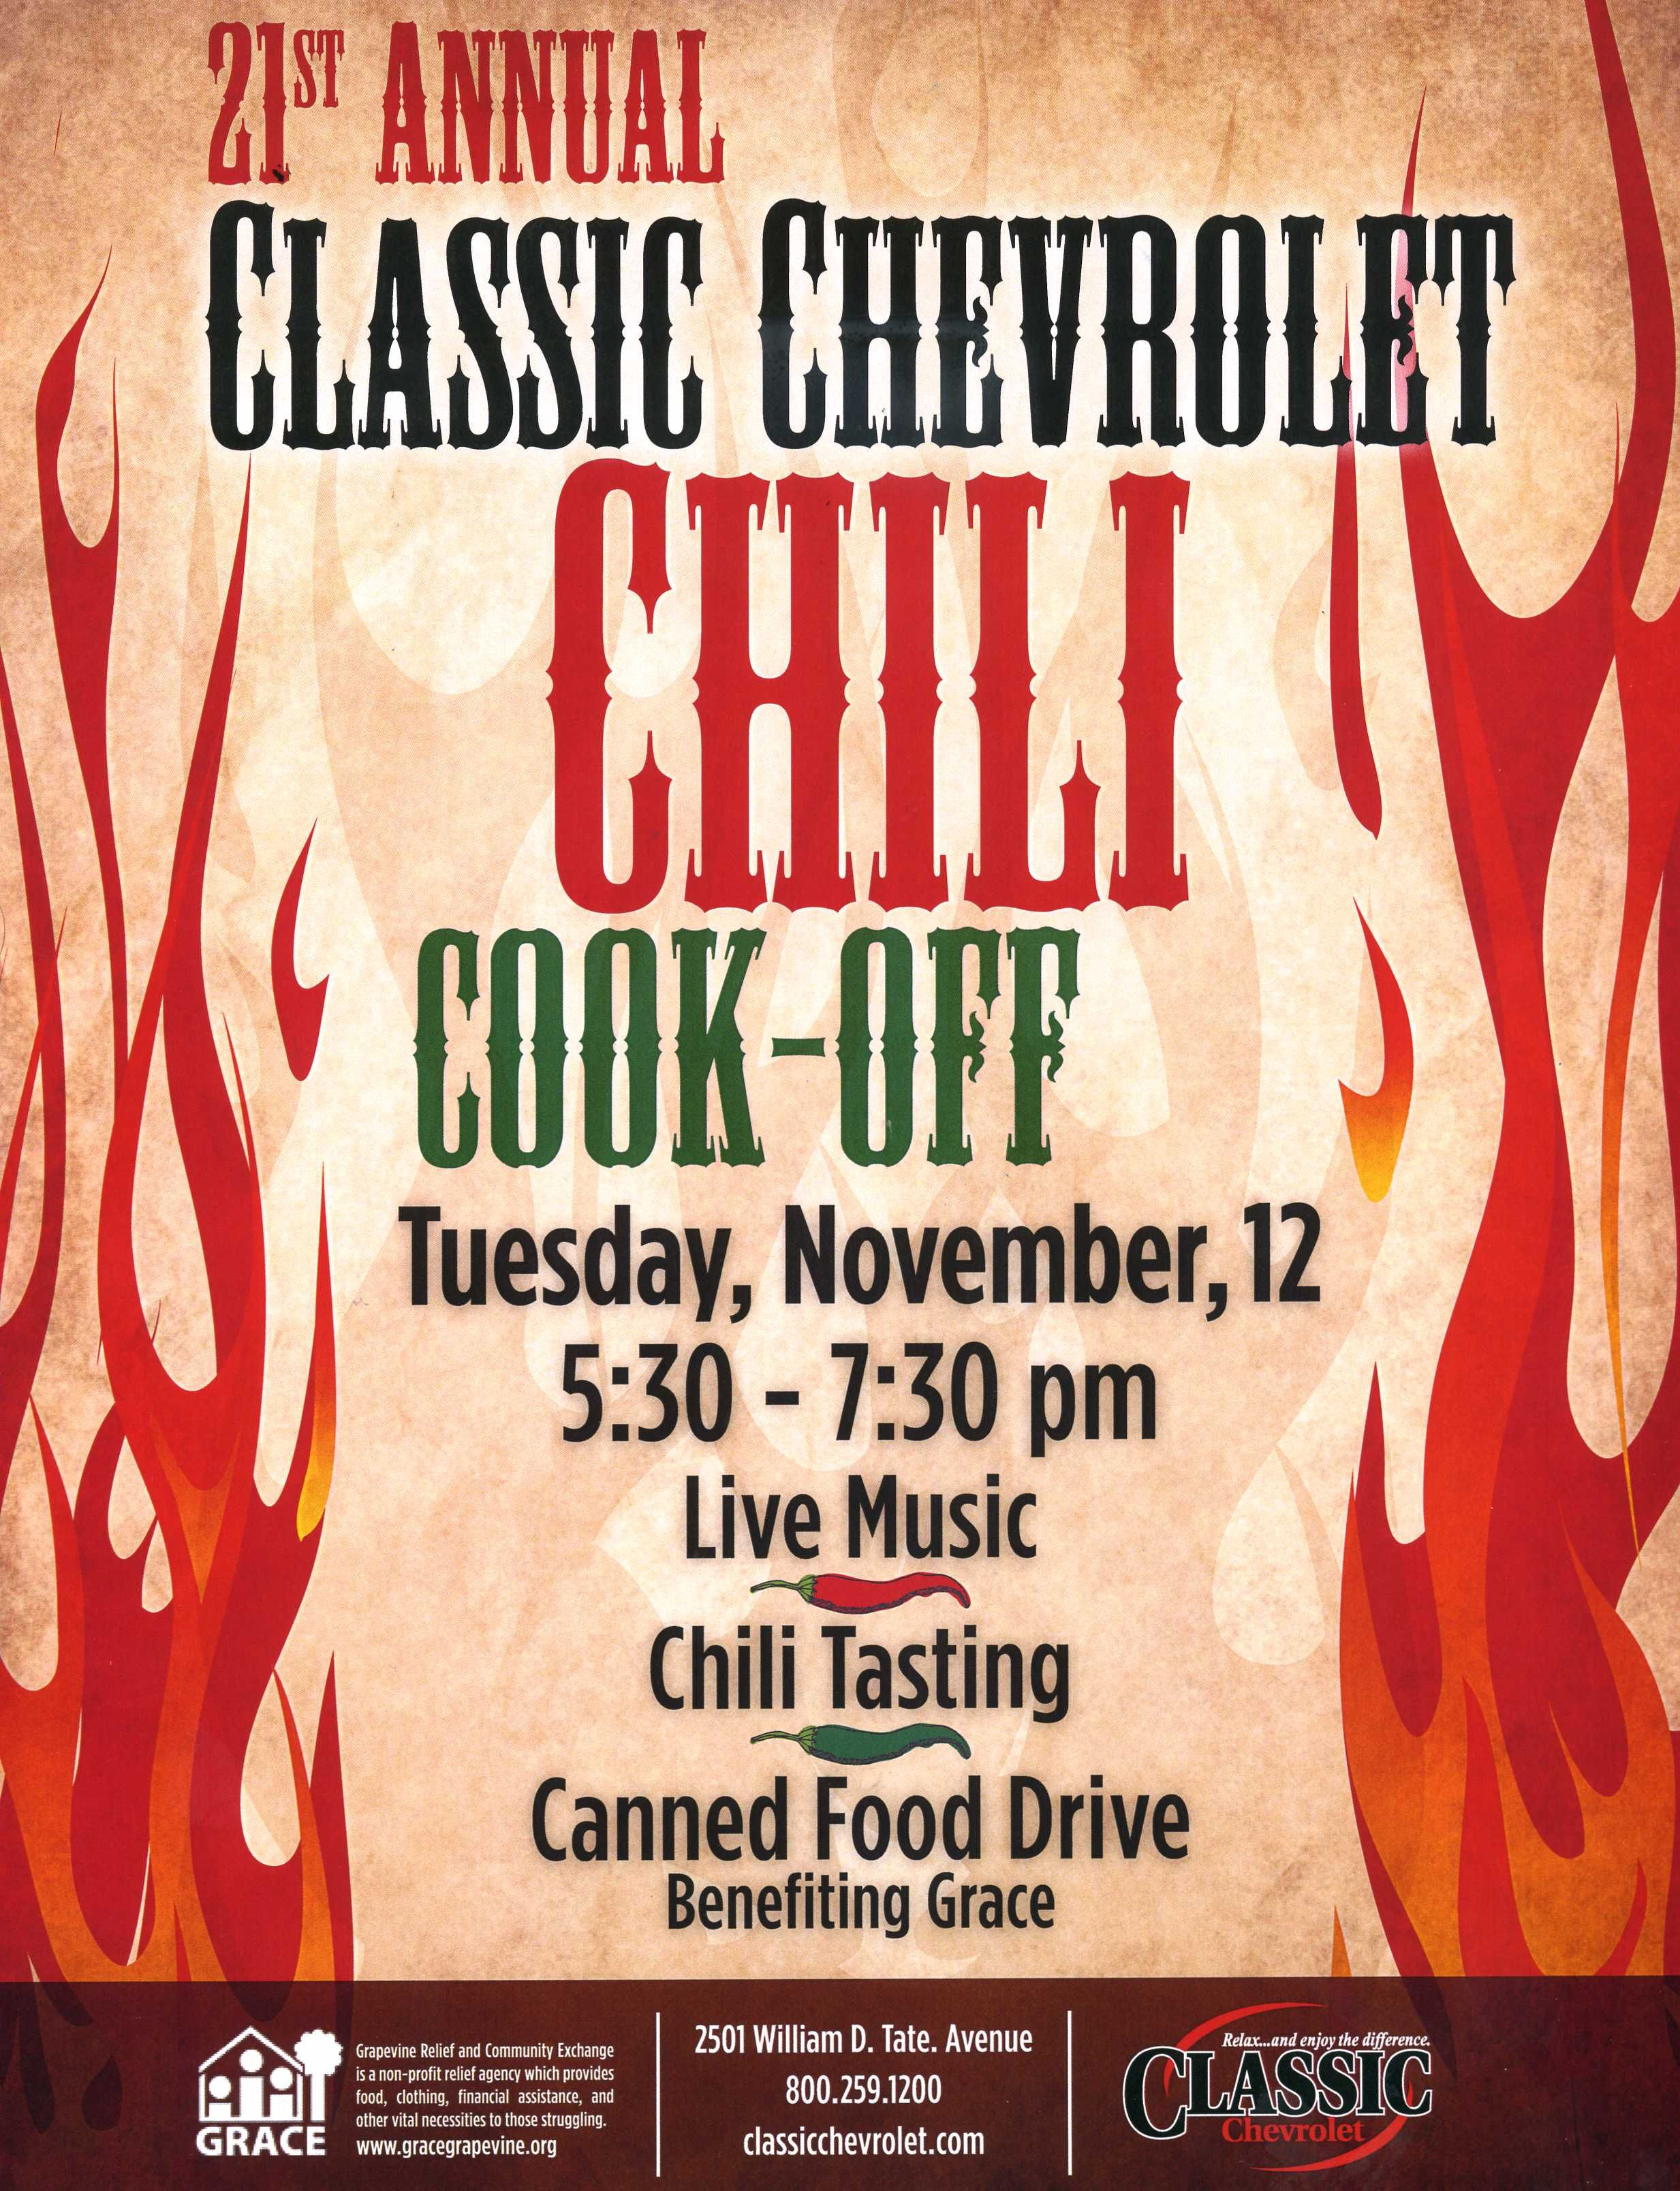 21st Annual Classic Chevrolet Chili Cook Off Nov 12 In Grapevine Tx Live Music Great Chili And A Canned Food Drive S Chili Cook Off Cook Off Classic Chili